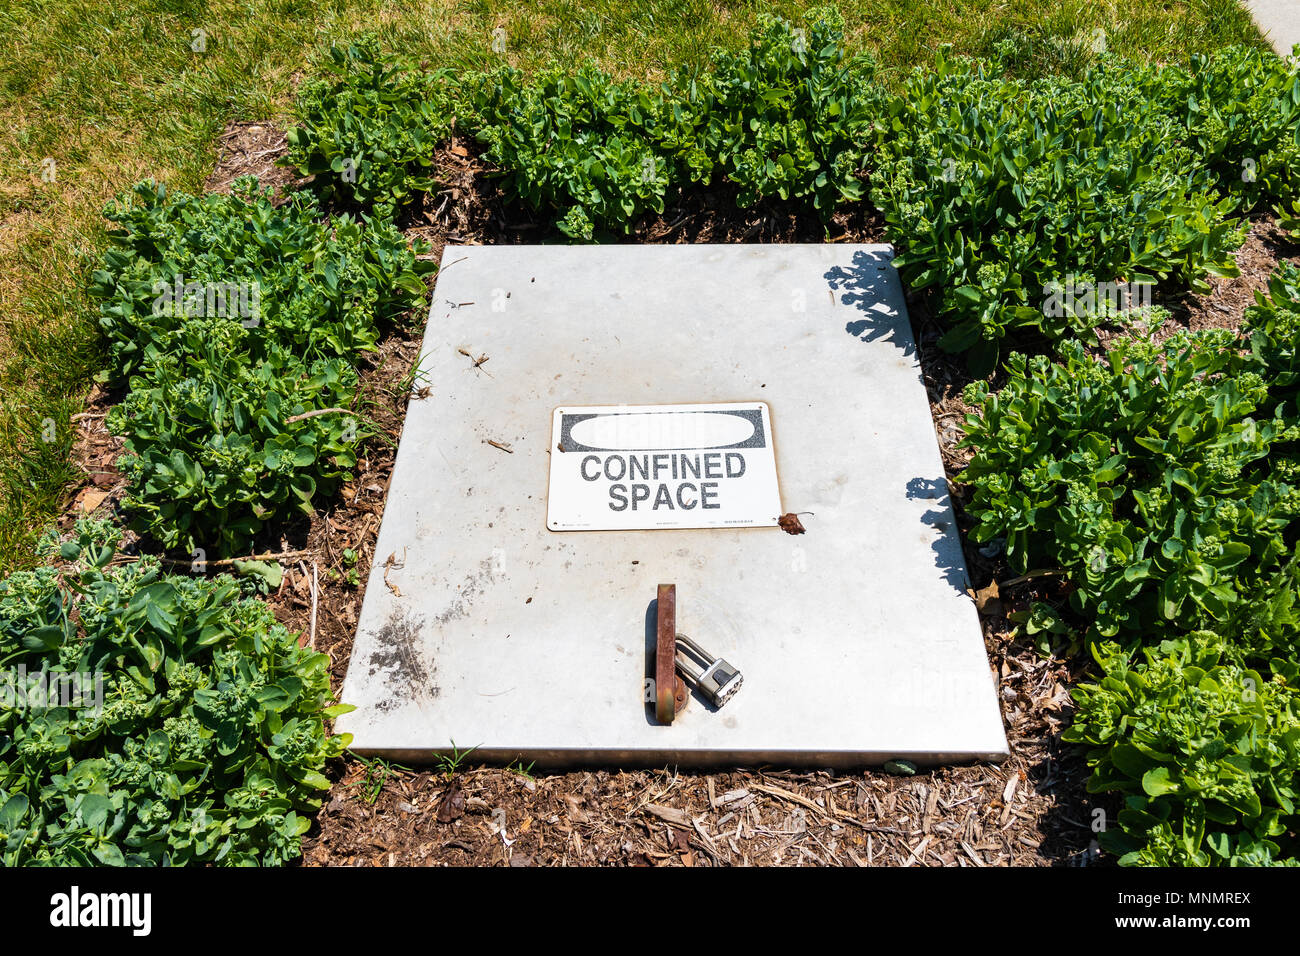 ASHEVILLE, NC, USA-13 MAY 18: Locked rectangular manhole cover with 'confined space' sign on it. - Stock Image